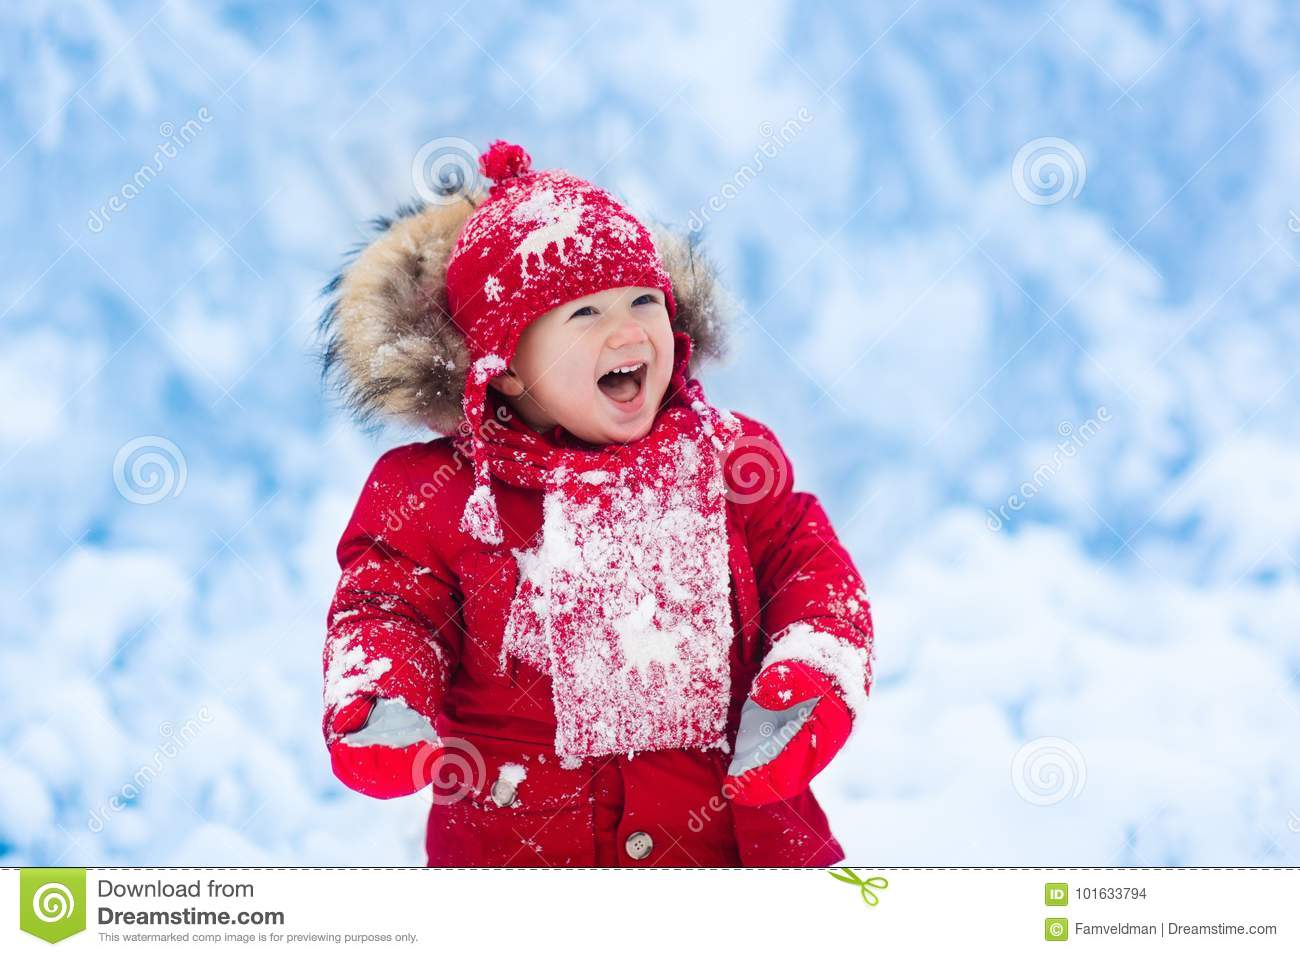 fa0fe052cb17 Baby Playing With Snow In Winter. Stock Photo - Image of reindeer ...